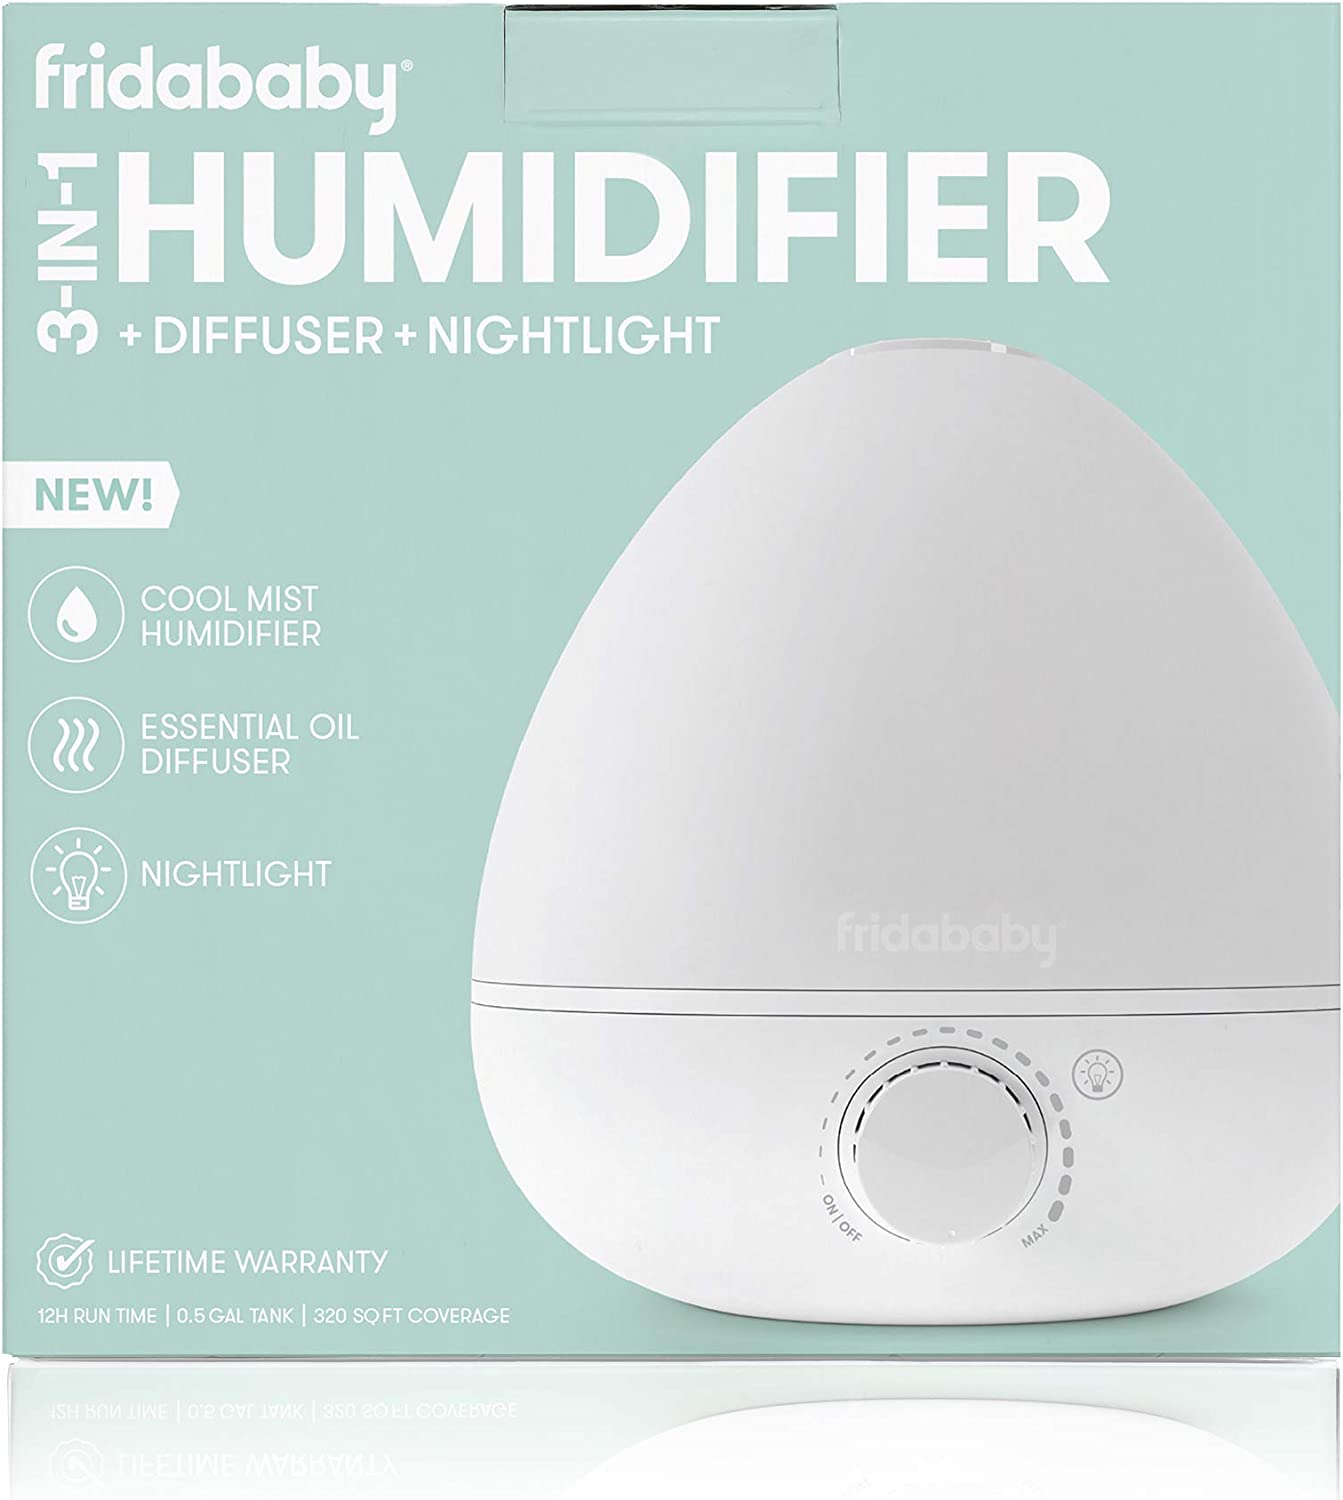 FridaBaby 3 in 1 Humidifier with Diffuser and Nightlight by